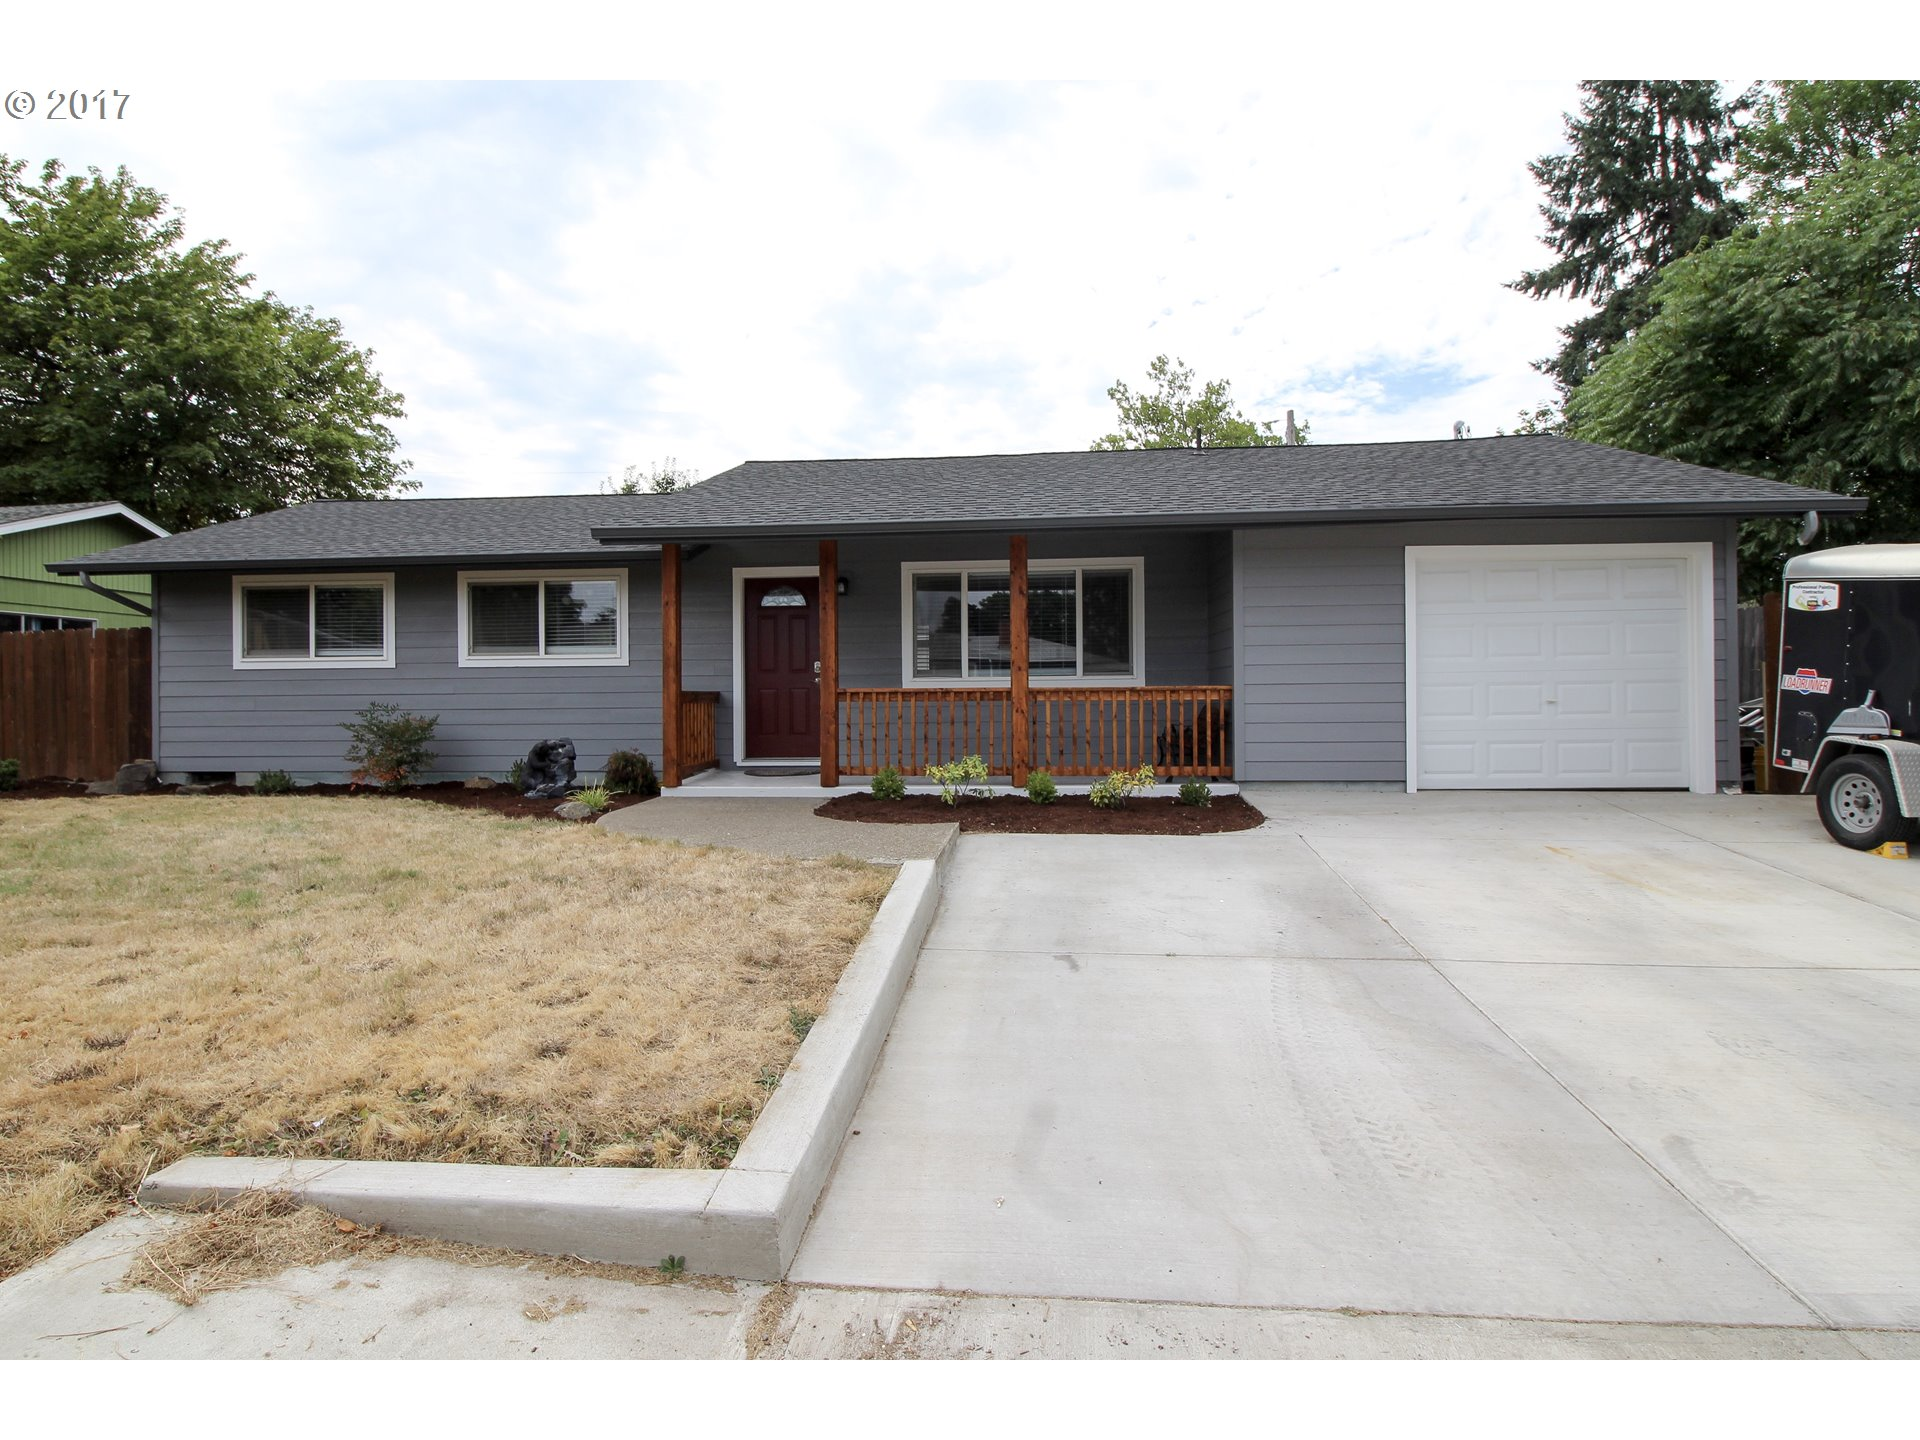 223 S P ST, Cottage Grove OR 97424